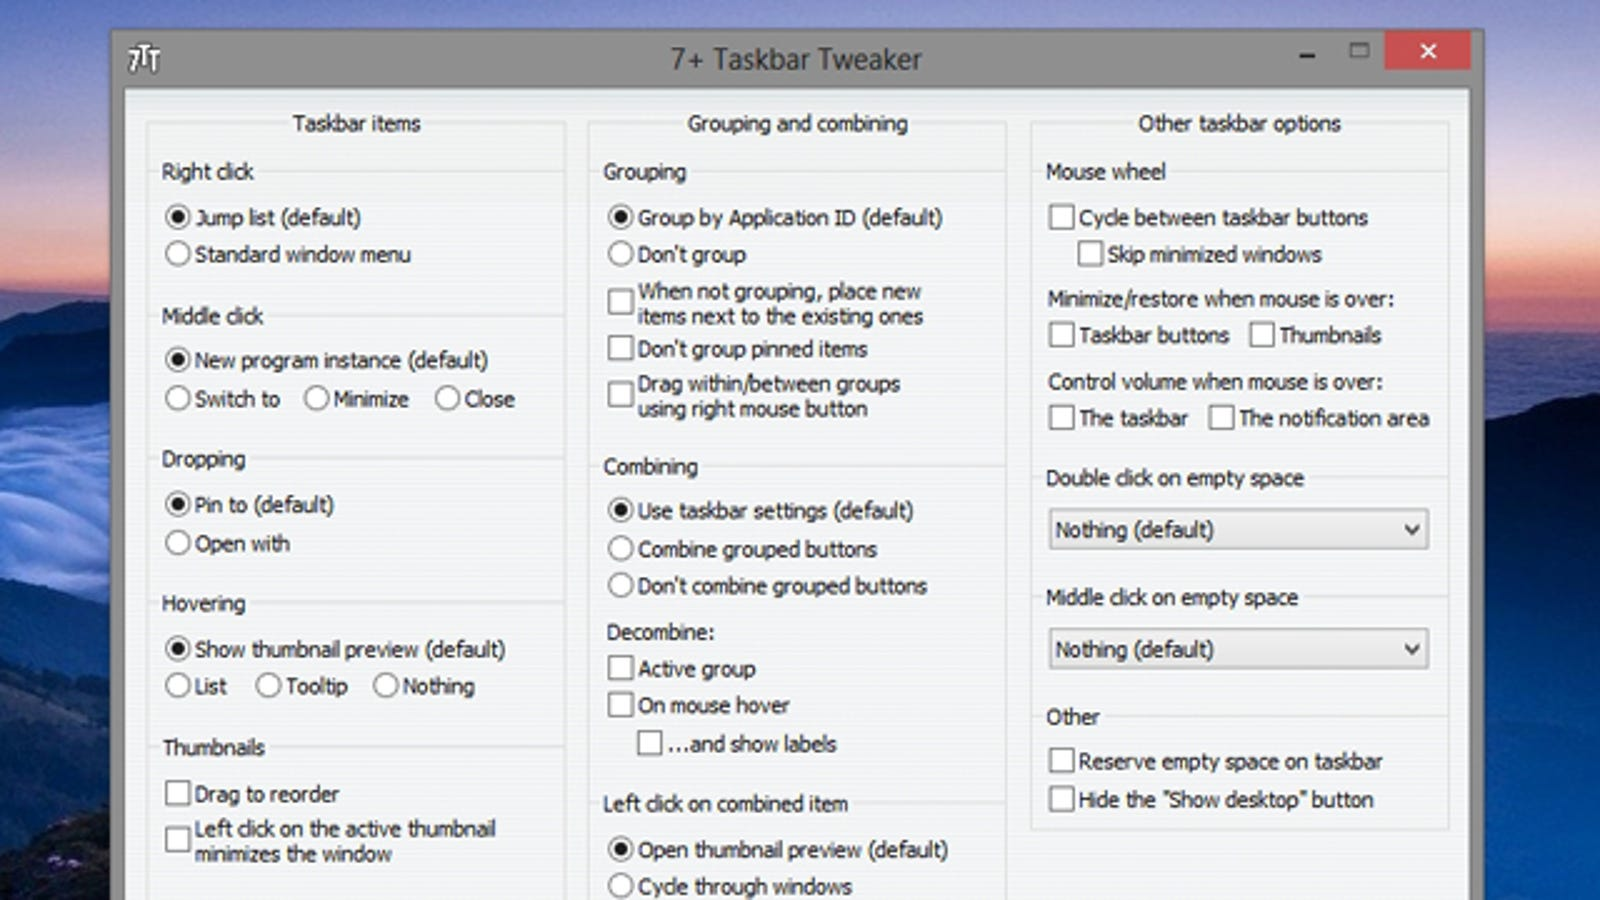 7+ Taskbar Tweaker Adds Tons of Extra Taskbar Settings to